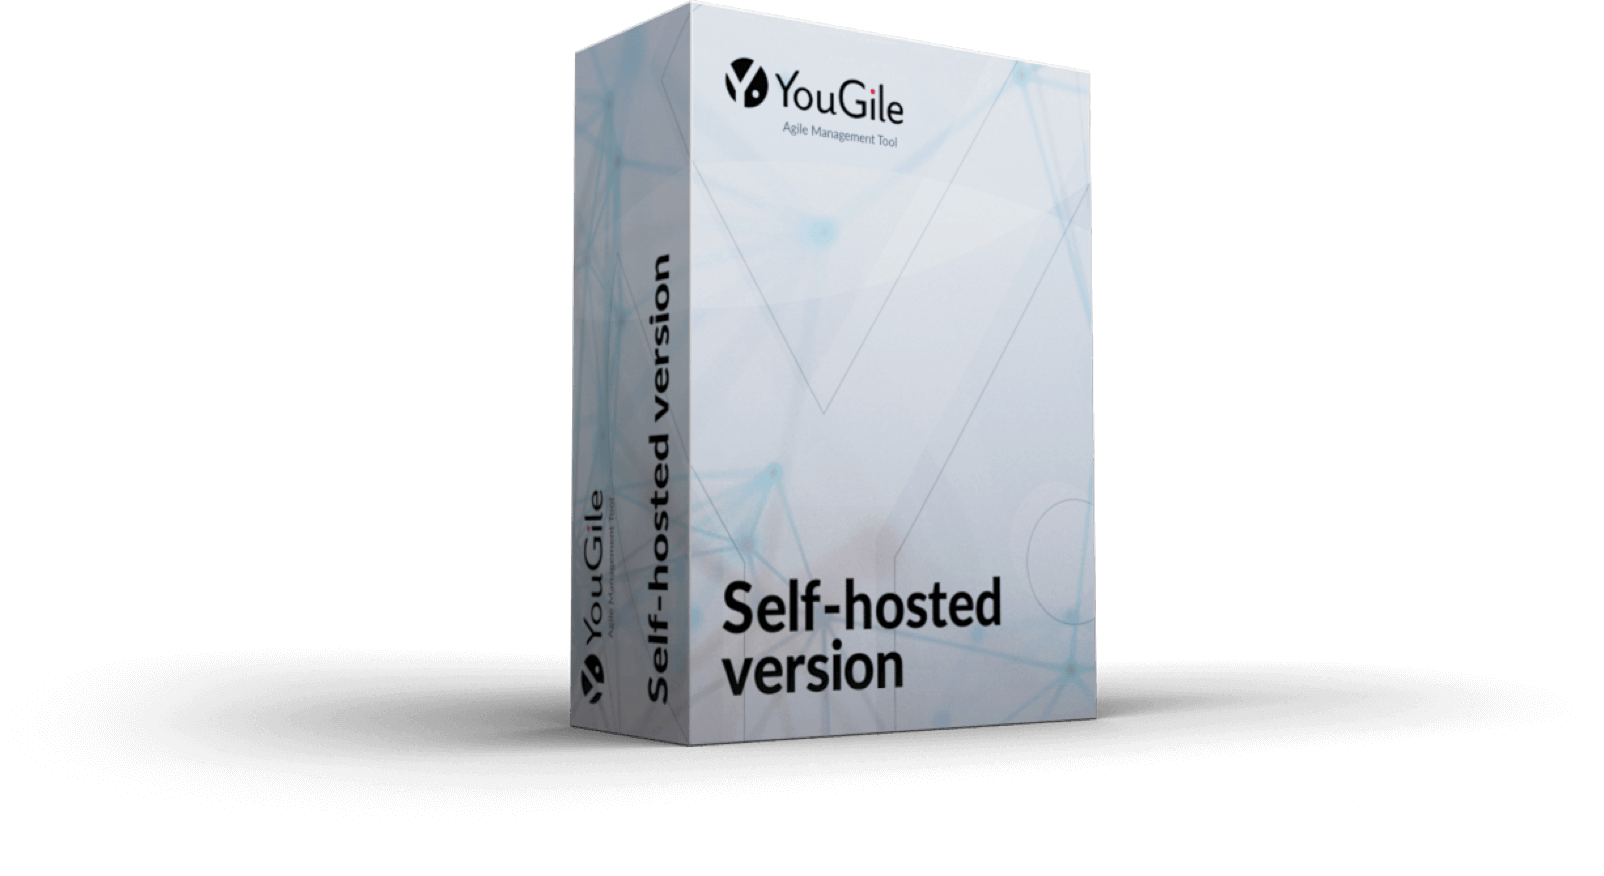 Self-hosted version of YouGile